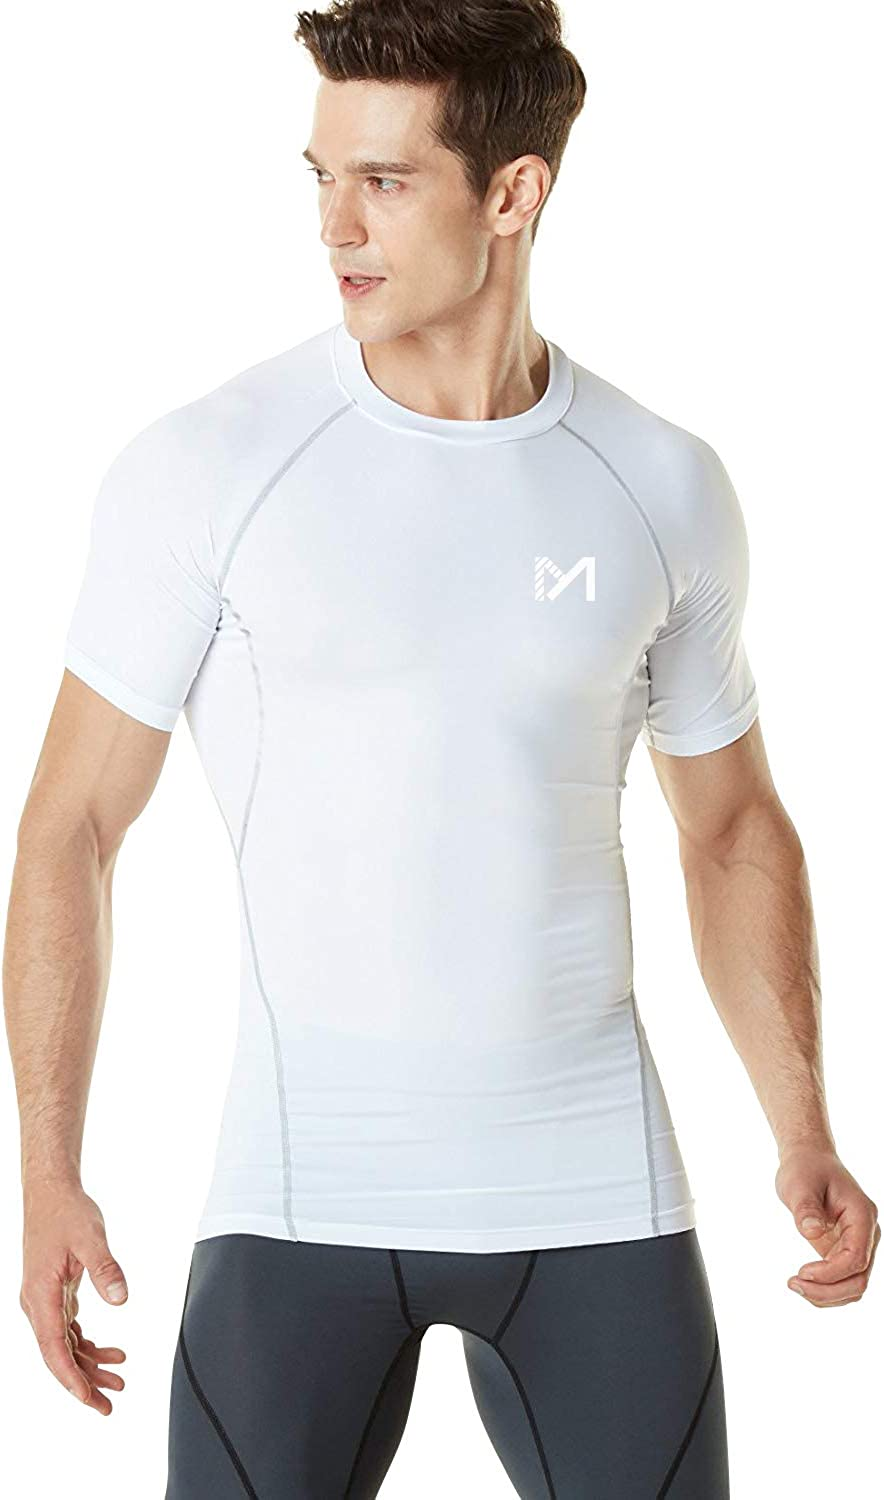 Men's Short Sleeve T-shirt Sports Compression Tight Fitness Base Layer Gym Top